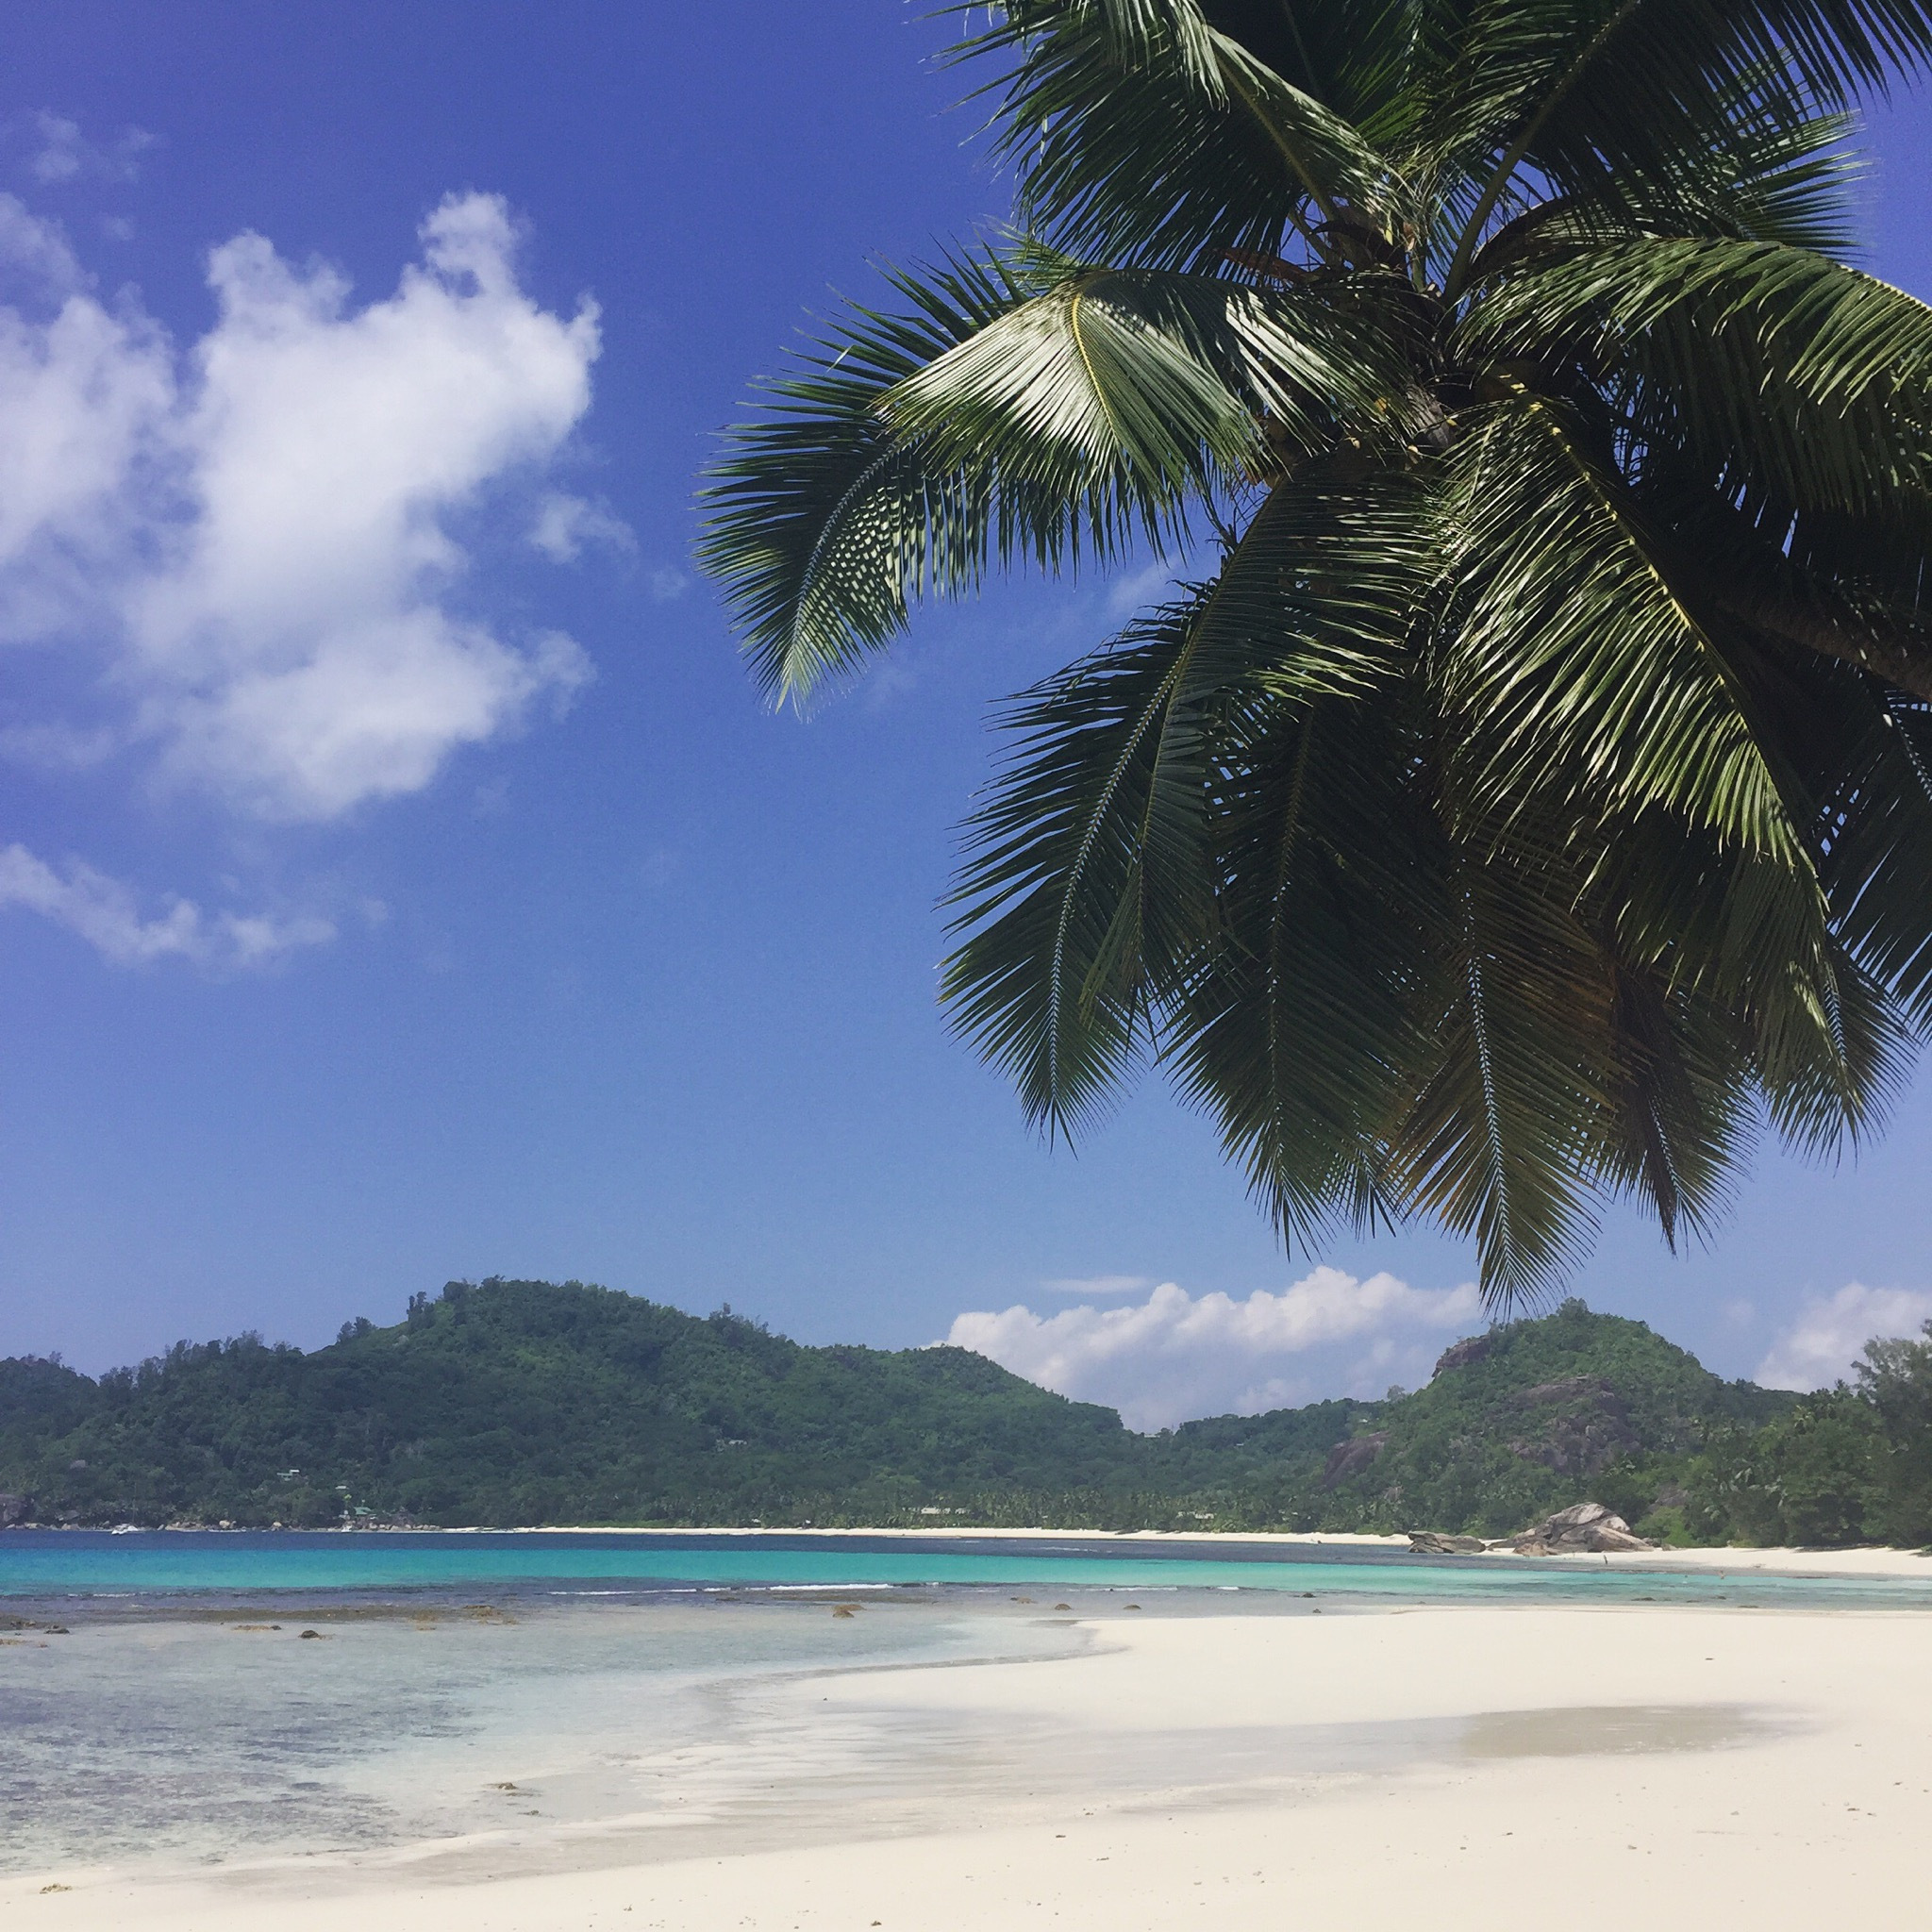 Seychelles Beach: The Ultimate Travel Guide To The Seychelles